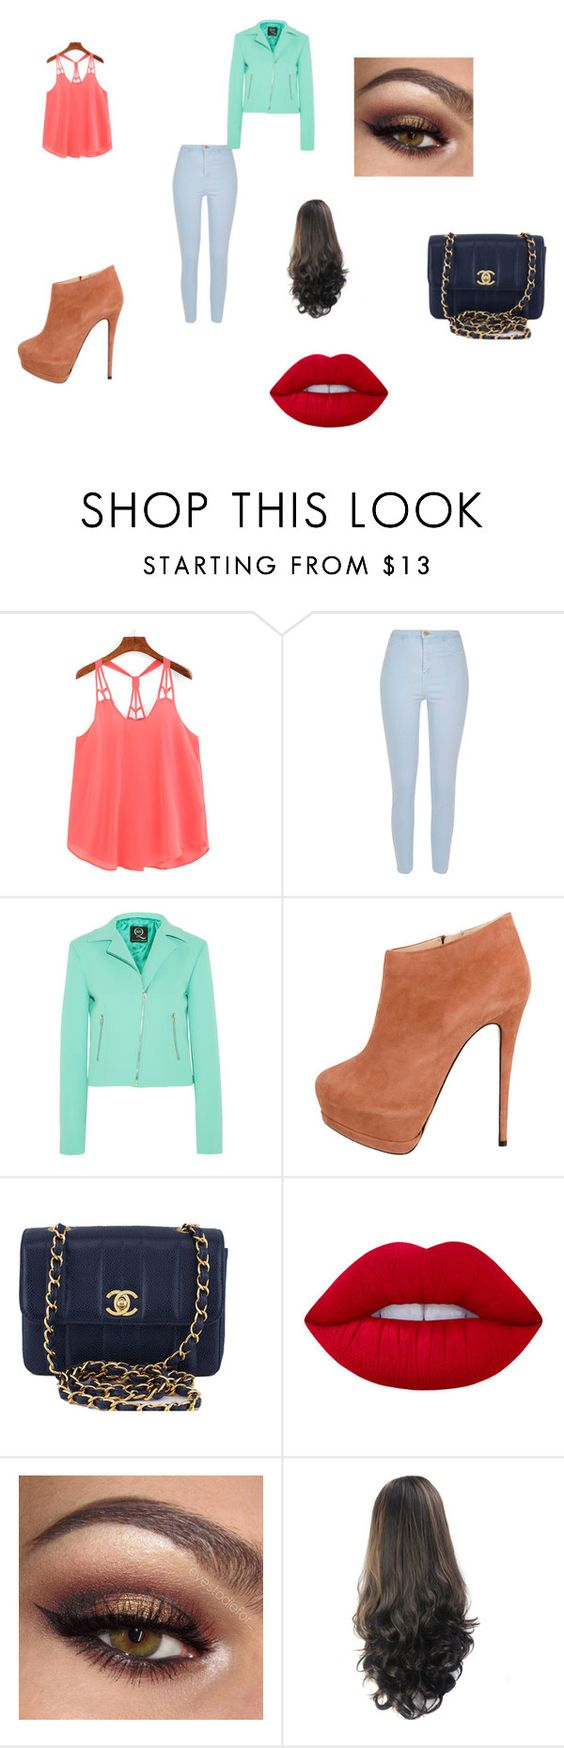 """City look"" by morgan-is-my-favorite ❤ liked on Polyvore featuring River Island, McQ by Alexander McQueen, Giuseppe Zanotti, Chanel and Lime Crime"